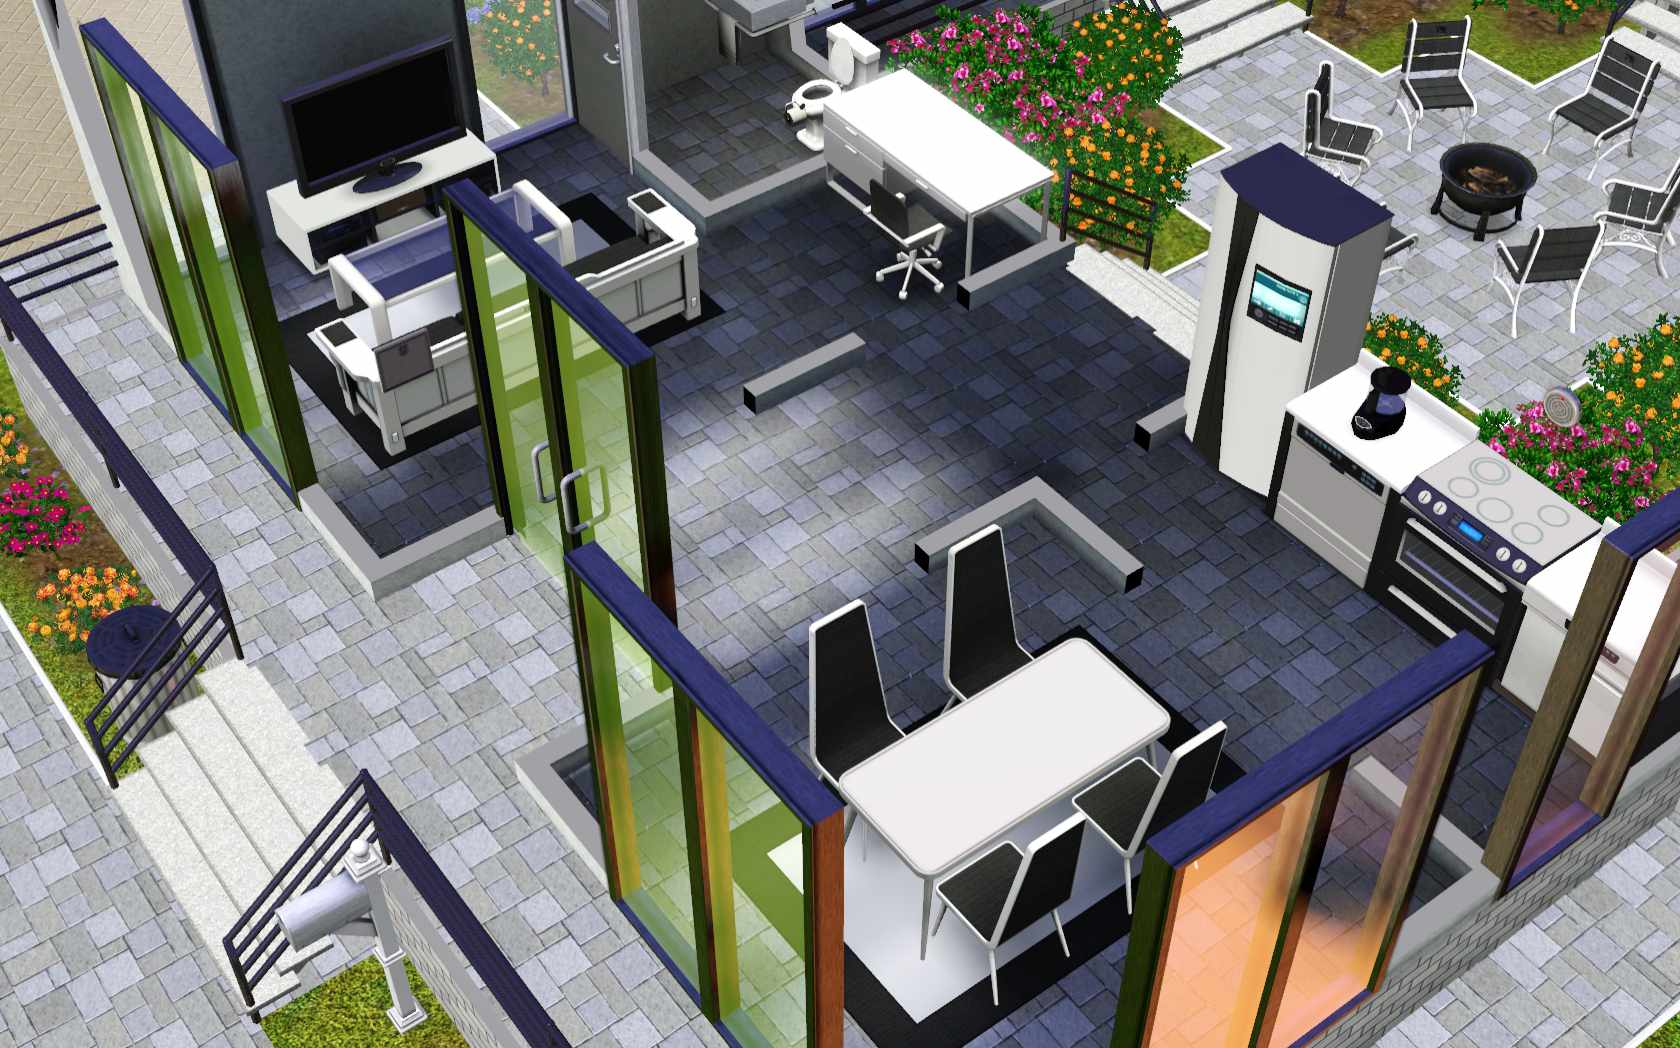 Sims 3 Home Design Hotshot   The Sims 3 Home Building And Design